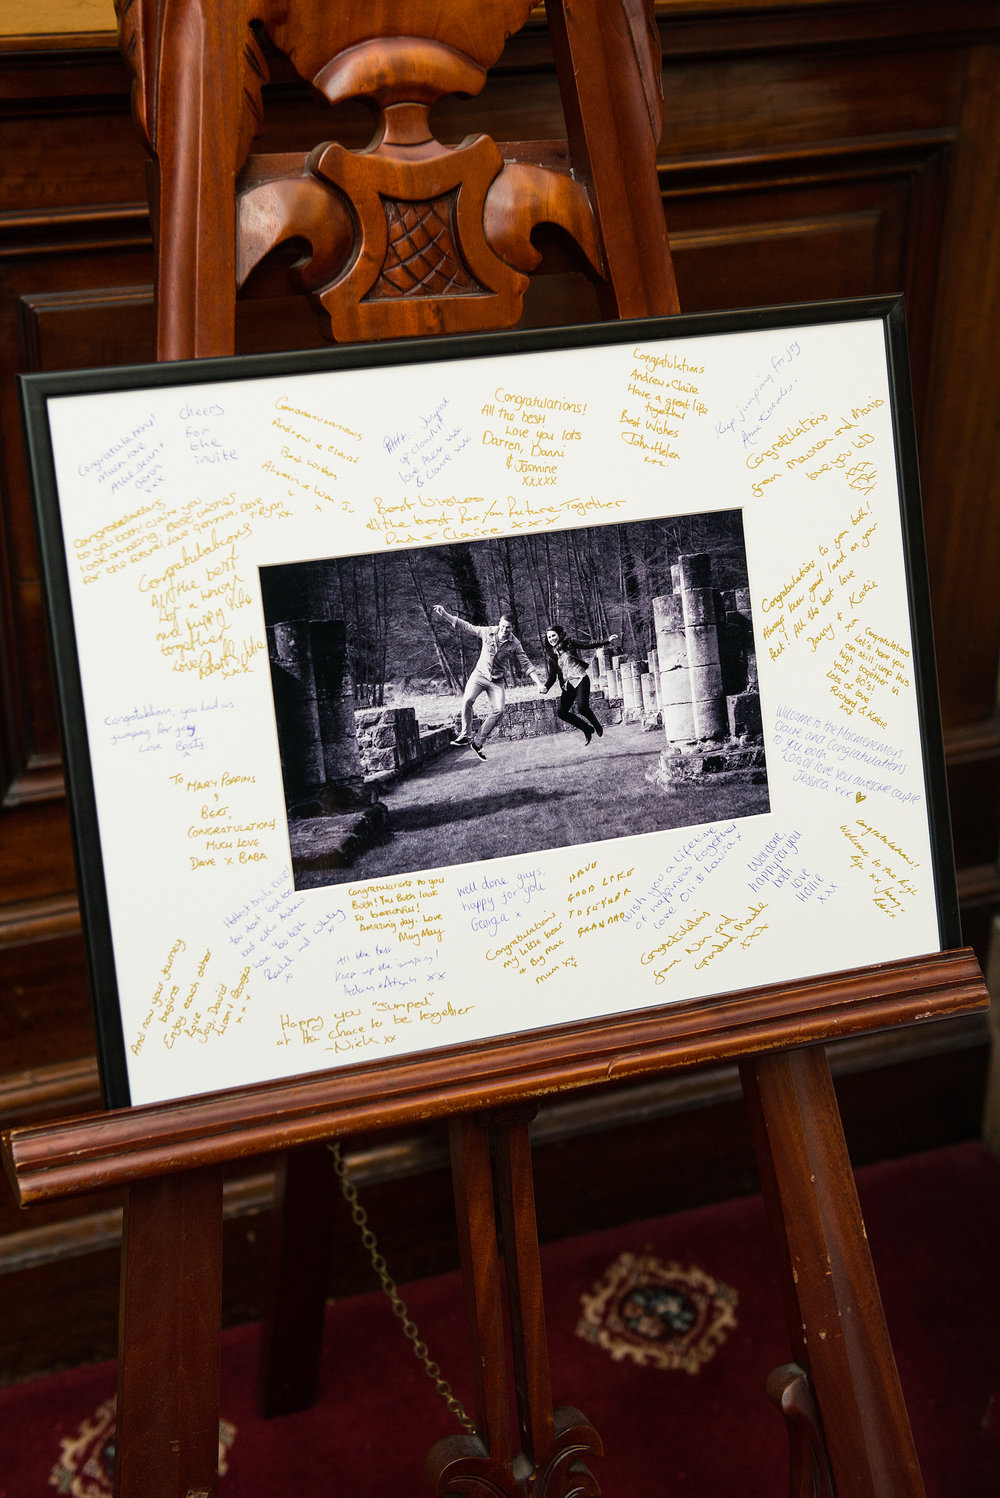 Framed signature mount complete with guests' signatures